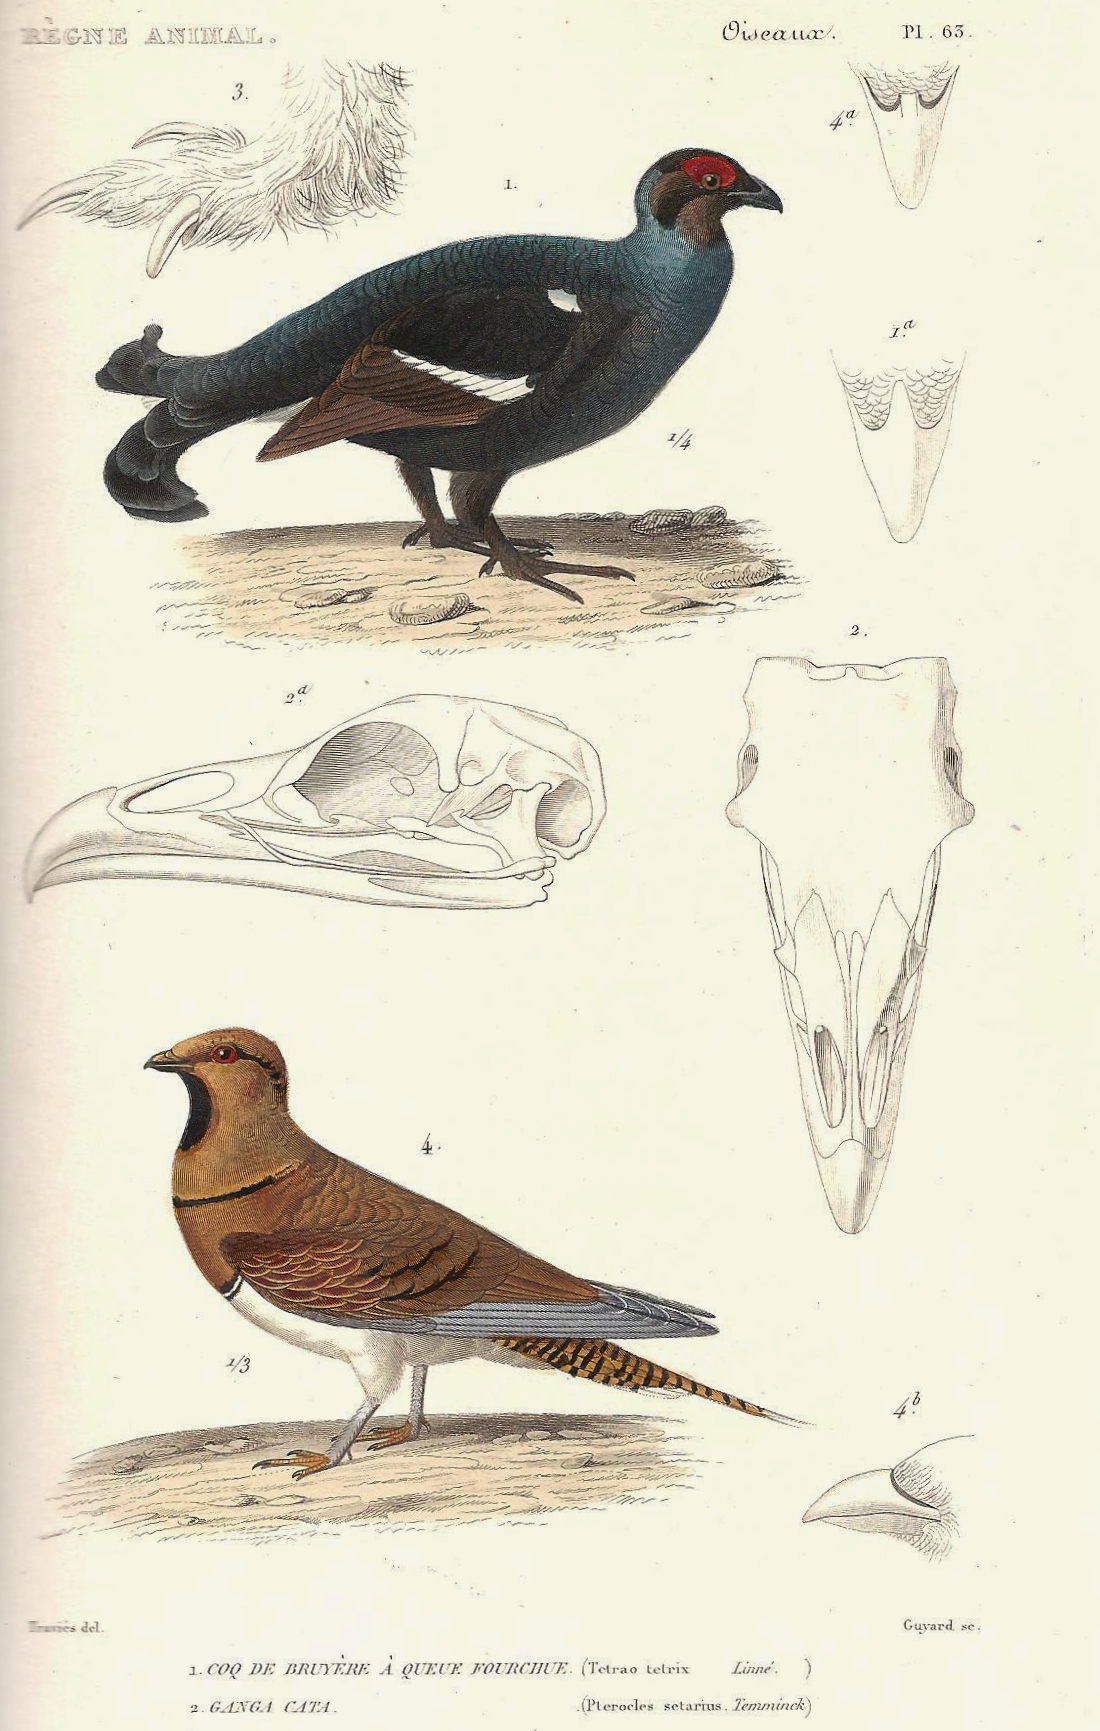 georges cuvier plate from le ratildeumlgne animal 1828 edition